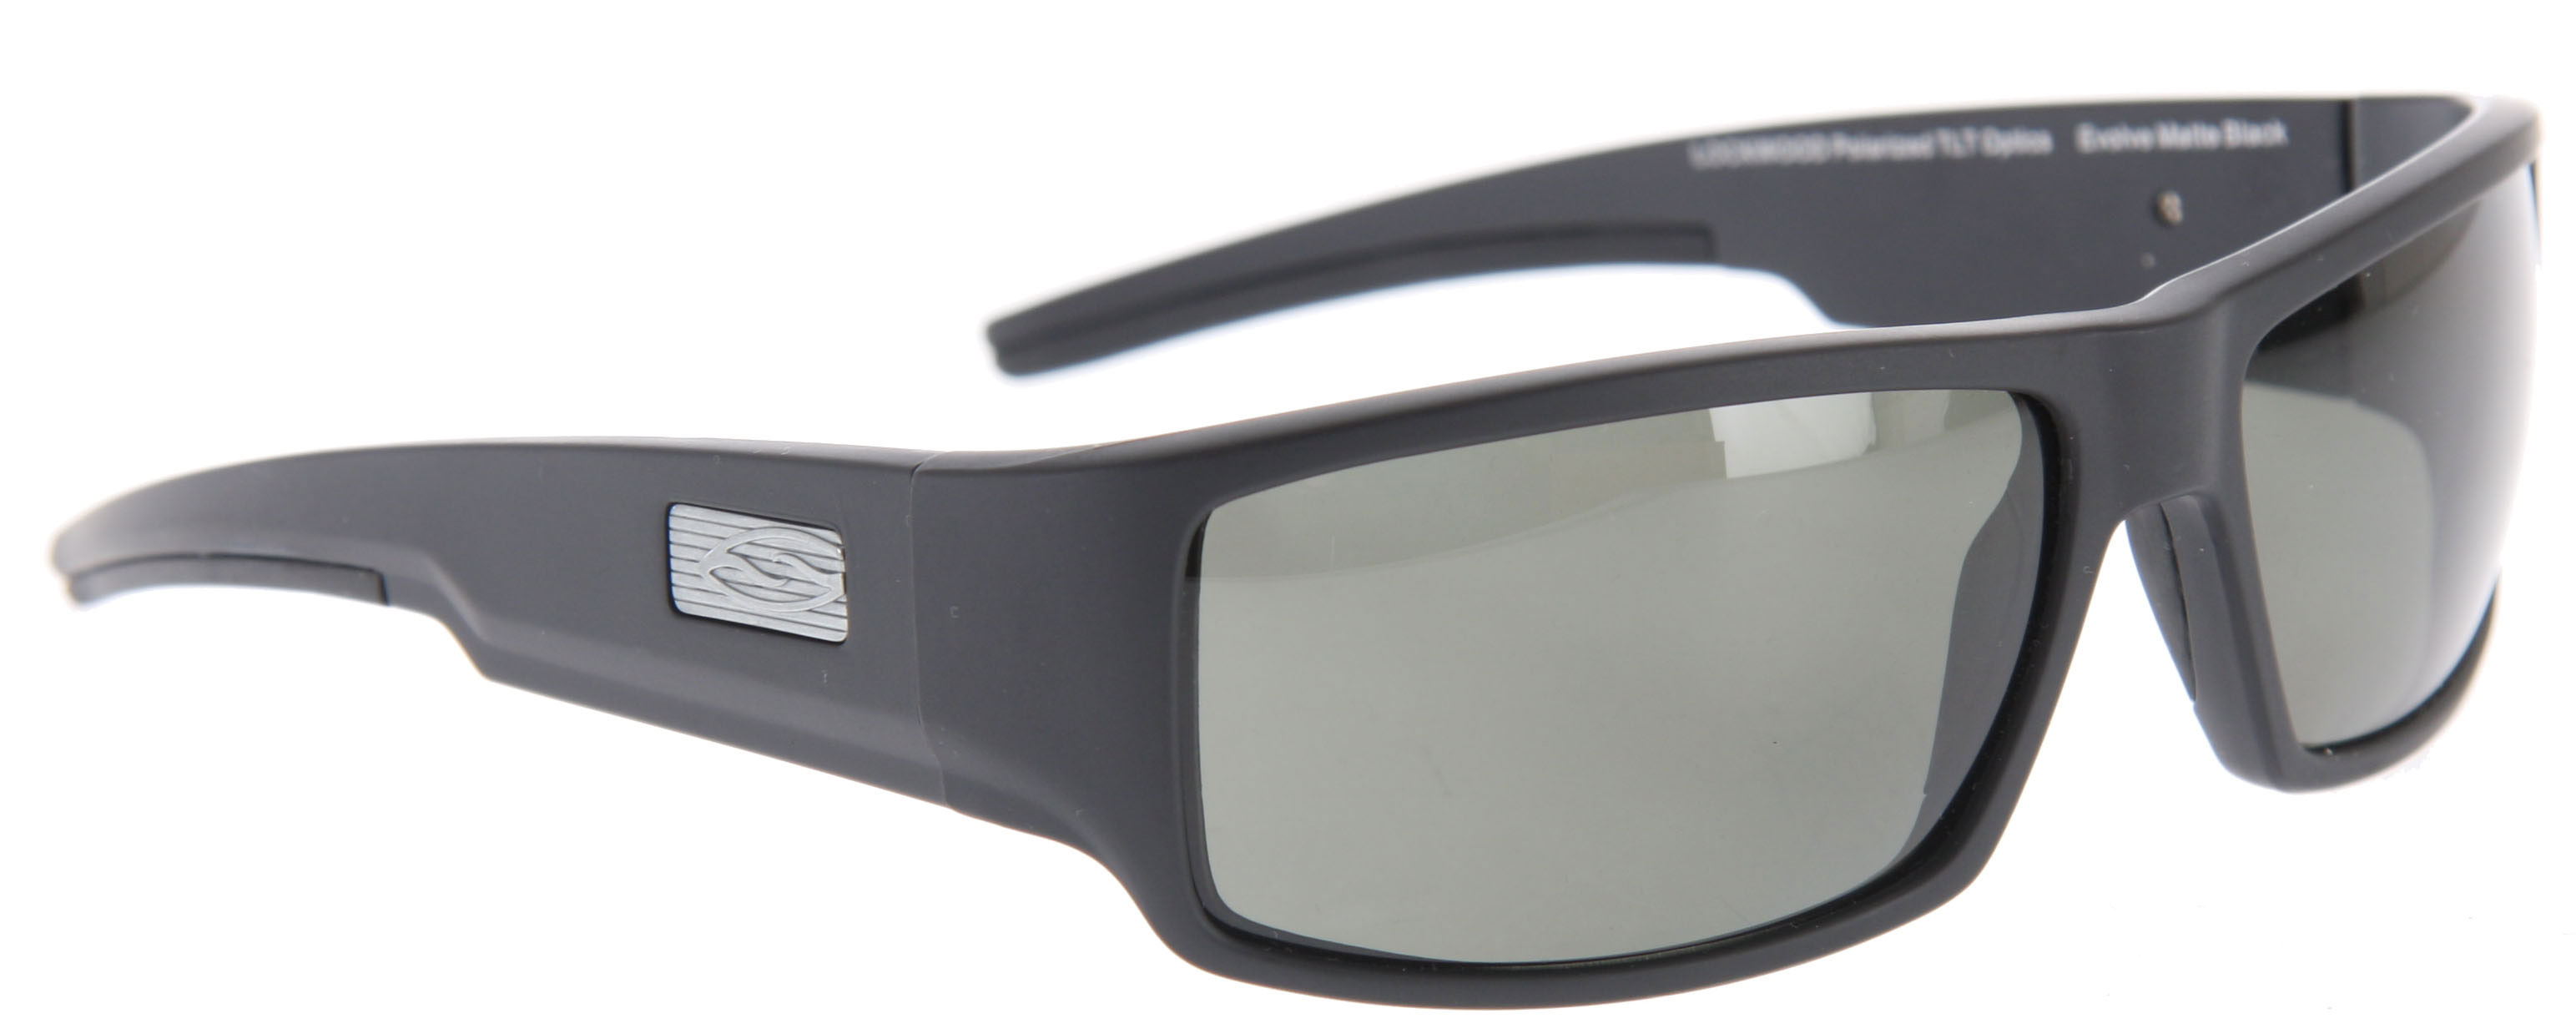 MTB The Smith Lockwood Sunglasses features a classic, yet modern profile. Disguised within this stylish package are sports friendly details like Hydrophilic Megol nose and temple pads. From mountain bike ride to wedding reception, the Lockwood is a true multi-tasker.Key Features of the Smith Lockwood Sunglasses: Medium Fit / Medium Coverage Carbonic TLT Lenses Evolve Frame Material Hydrophilic Megol Nose and Temple Pads 8 Base Lens Curvature Frame Measurements 63-14-120 - $84.95